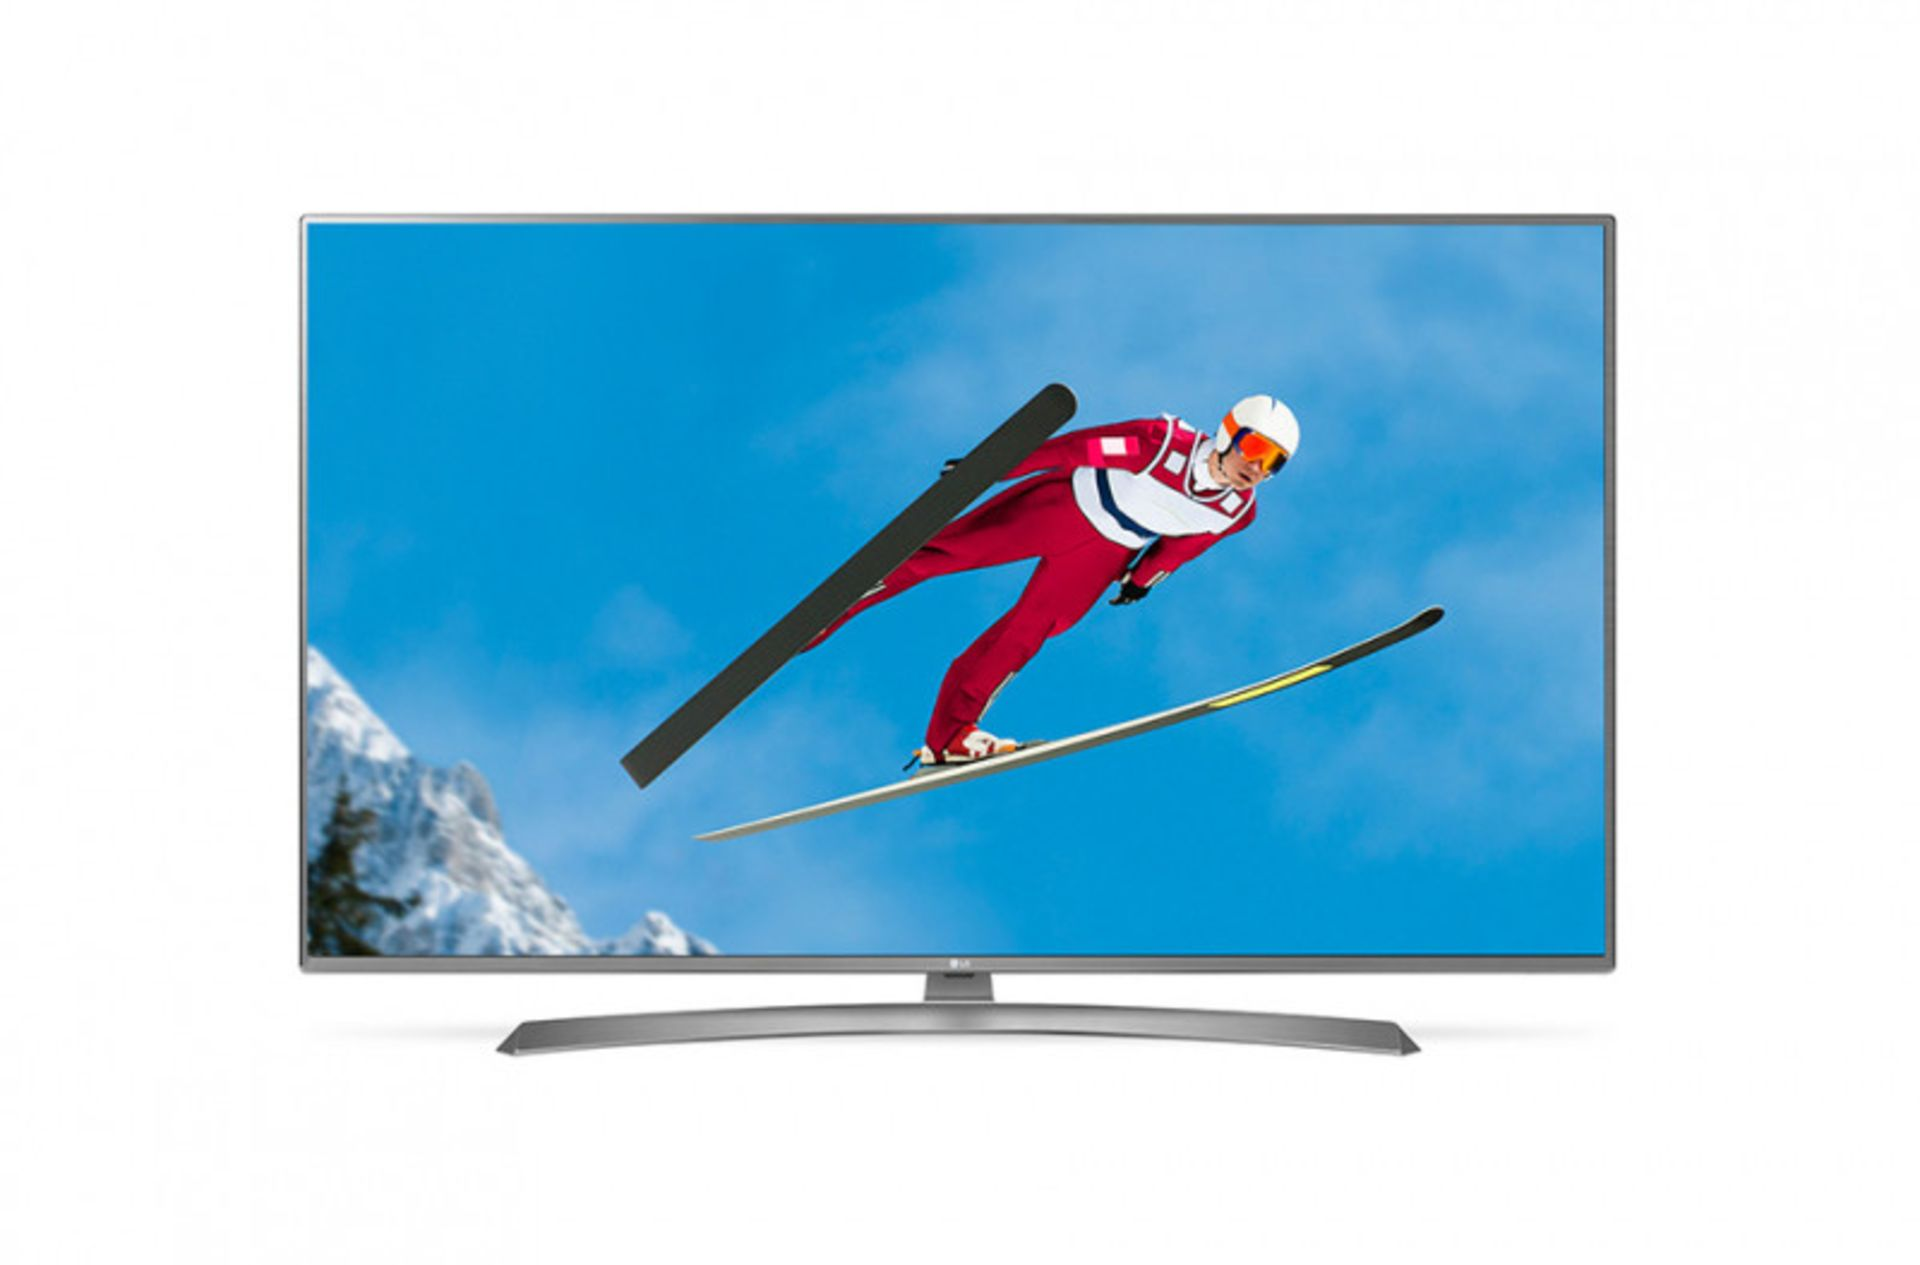 Lotto 30004 - V Grade A LG 55 Inch ACTIVE HDR 4K ULTRA HD LED SMART TV WITH FREEVIEW HD & WEBOS 3.5 & WIFI